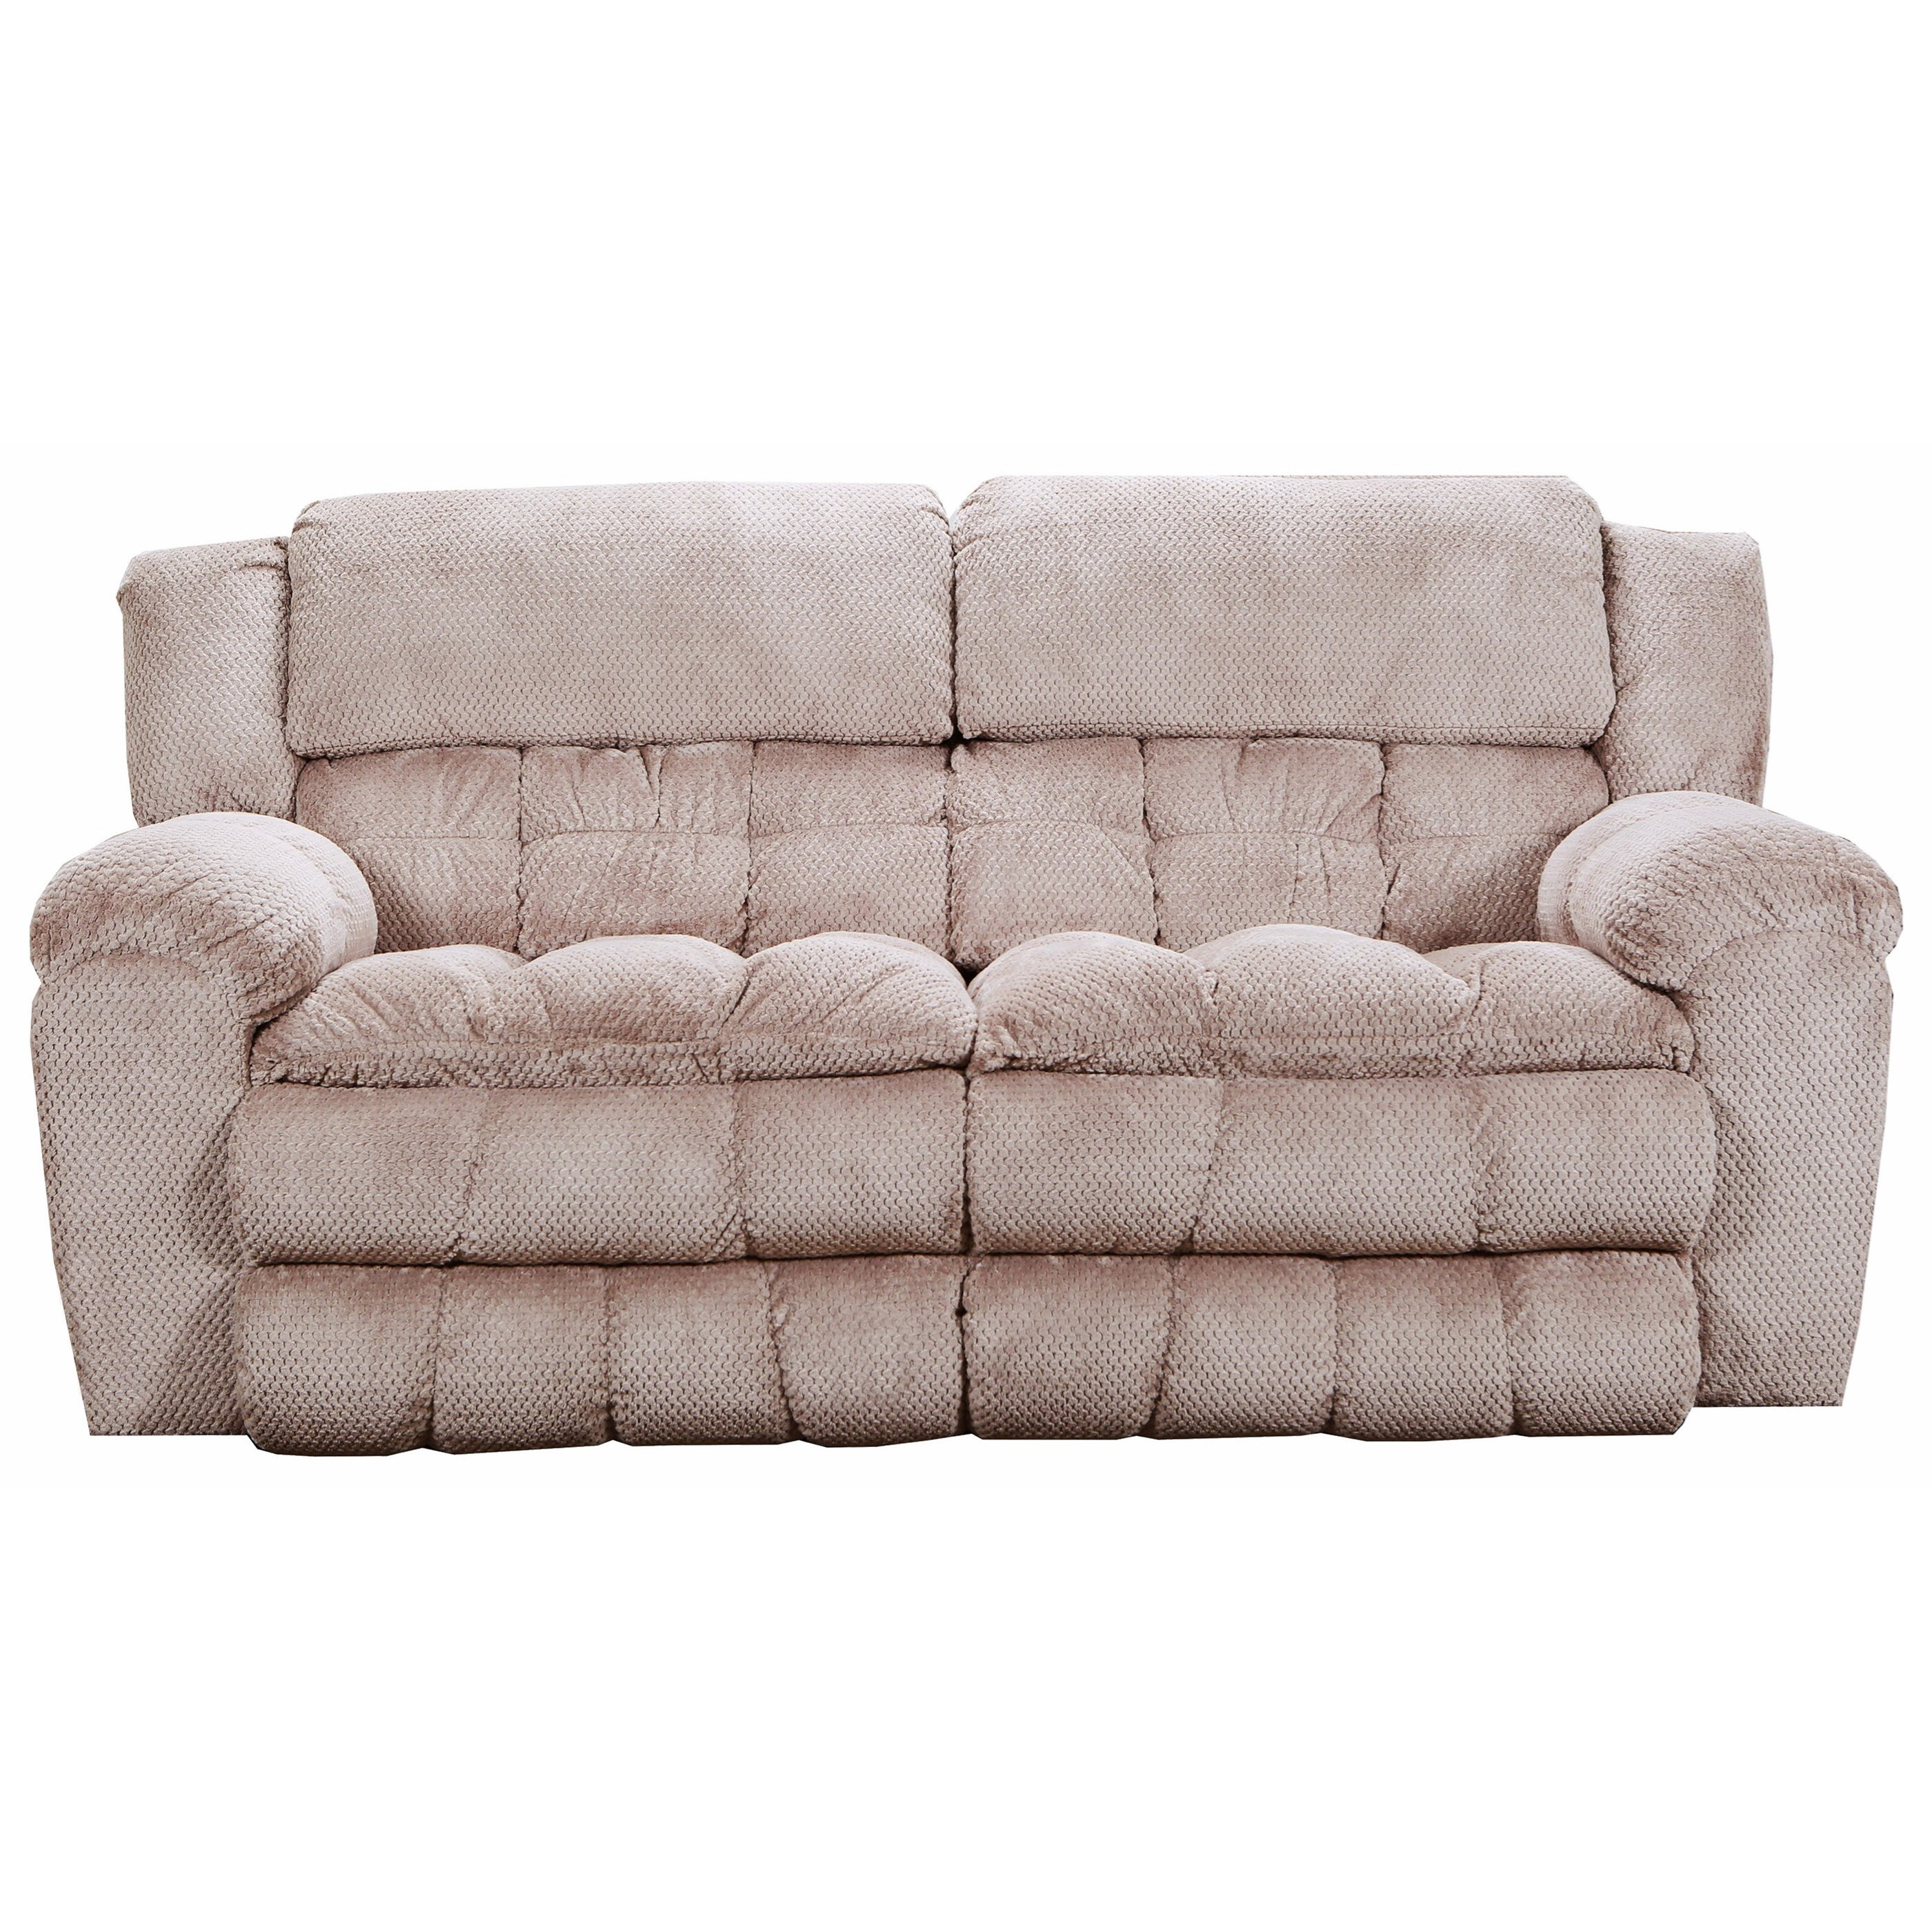 United Furniture Industries 50580BR Double Motion Sofa   Item Number:  50580BRSOFA